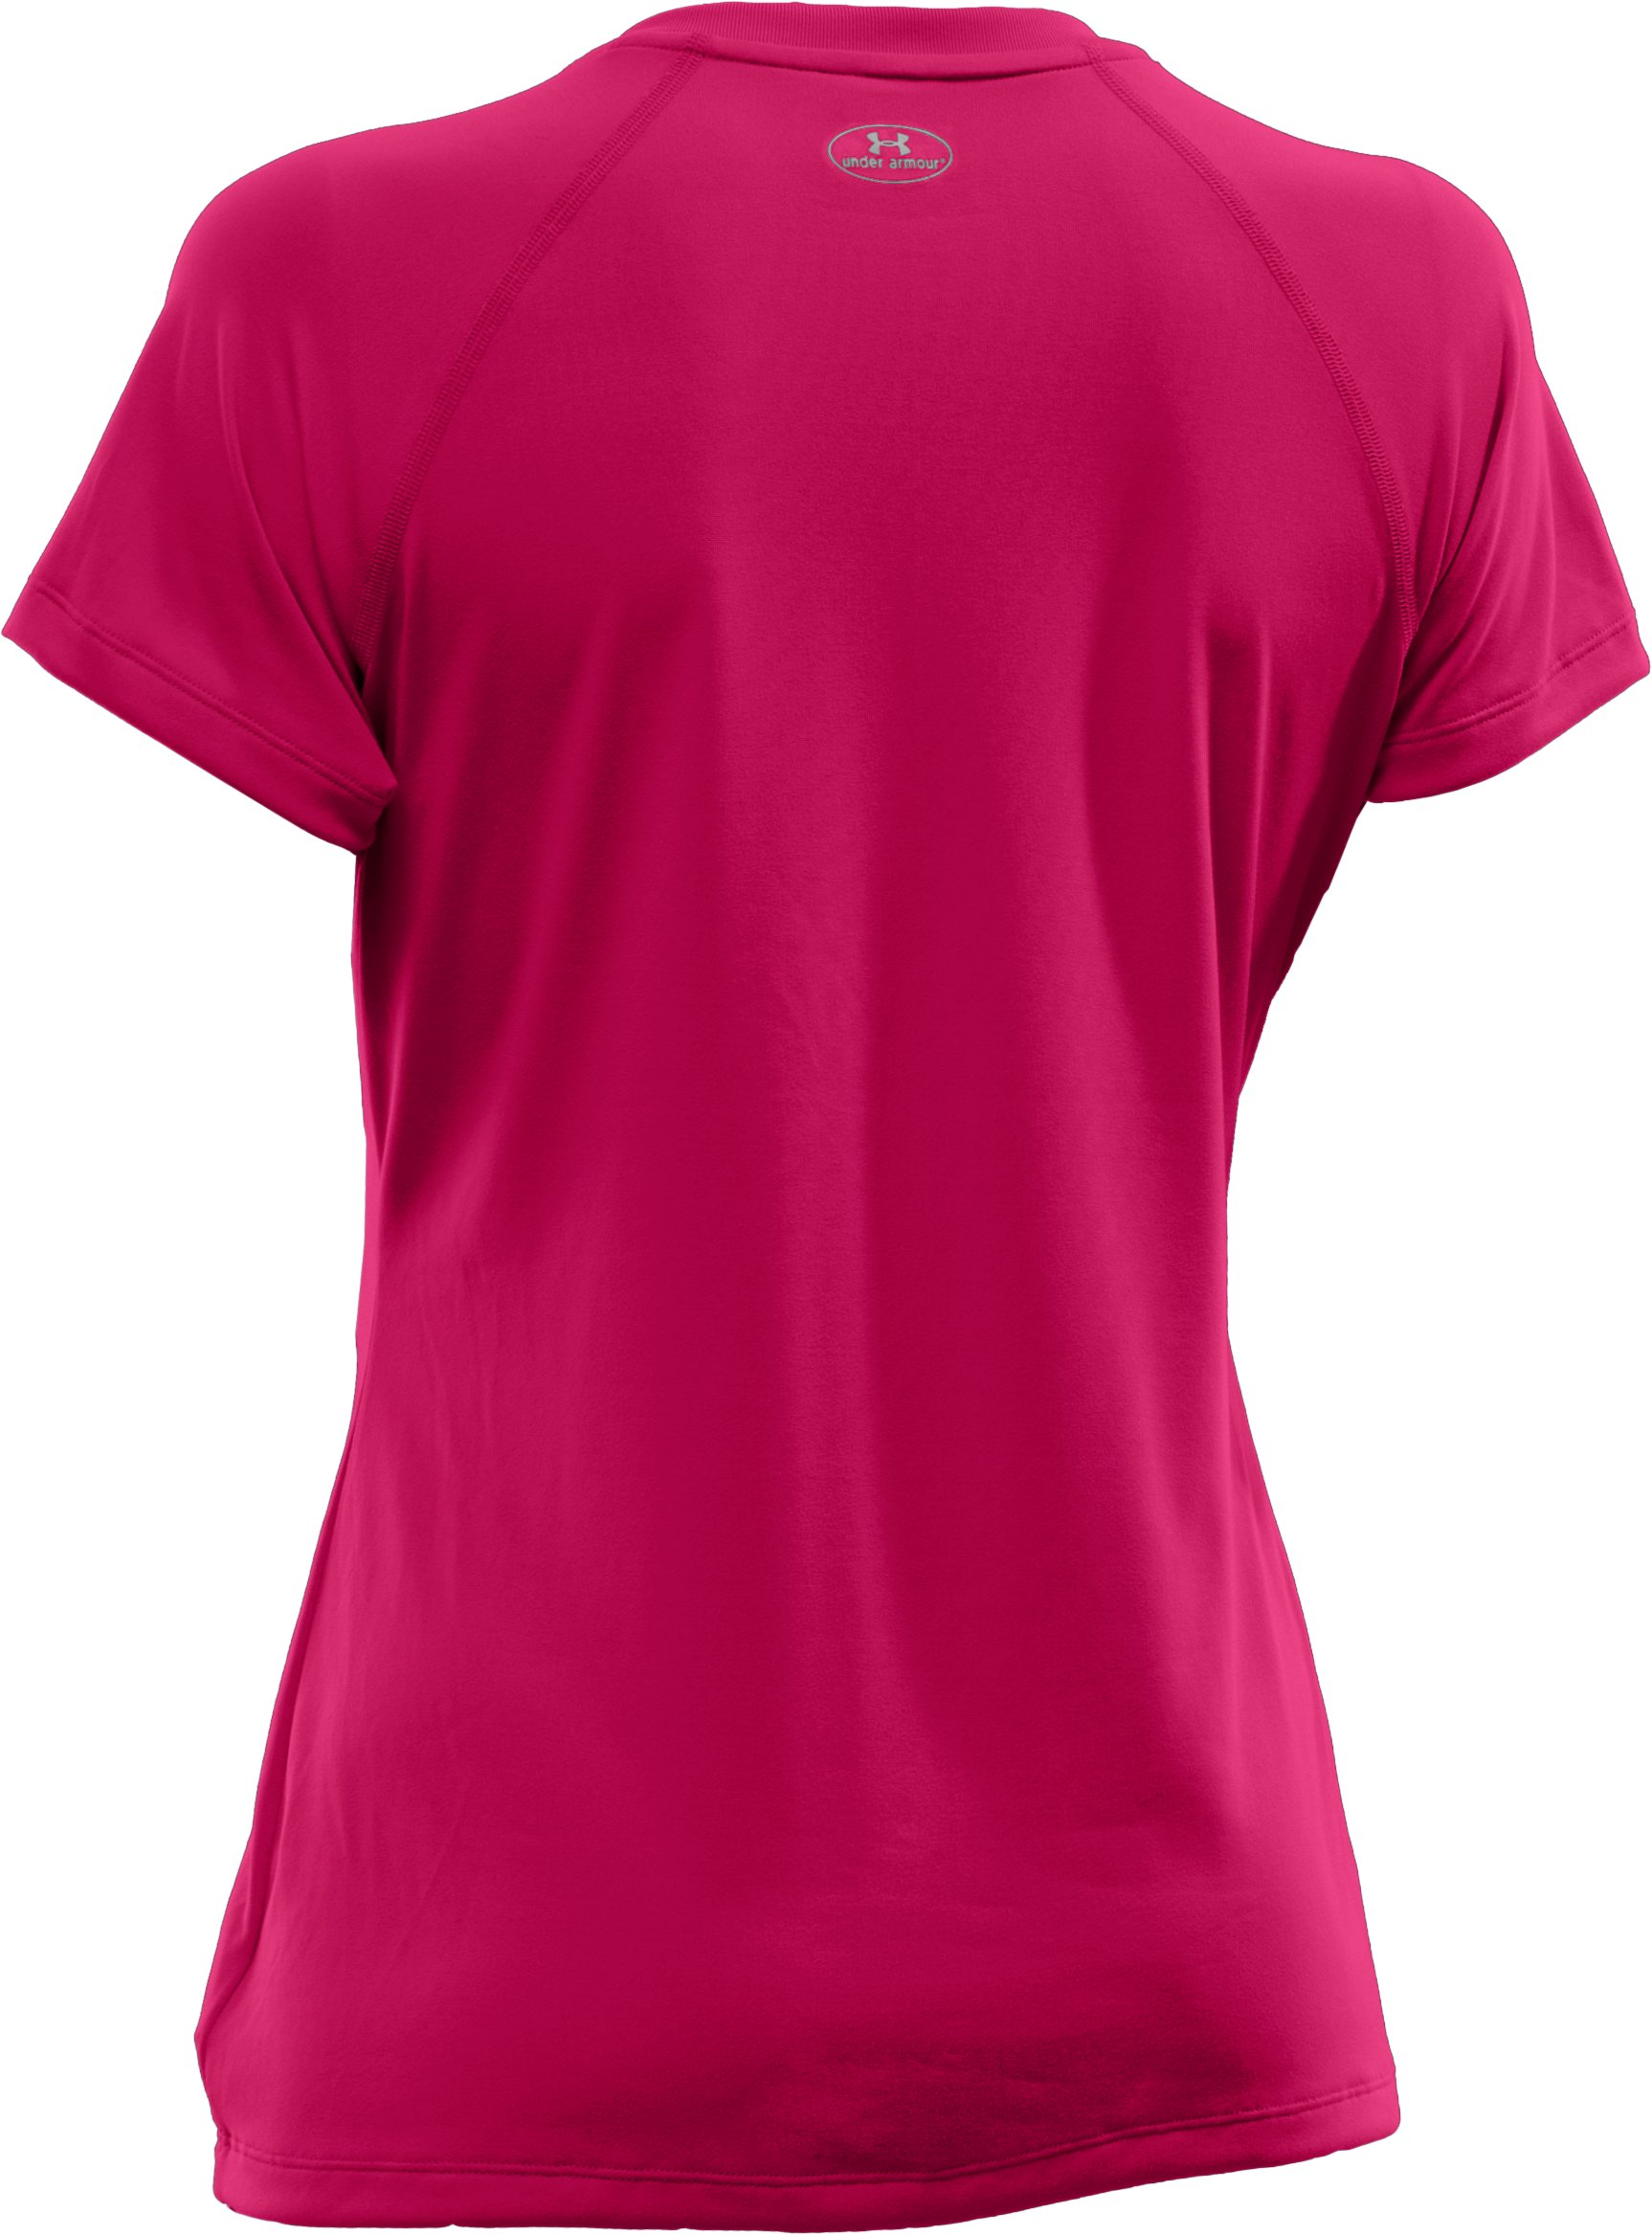 Women's UA Tech™ Short Sleeve V-Neck, EXUBERANT PINK